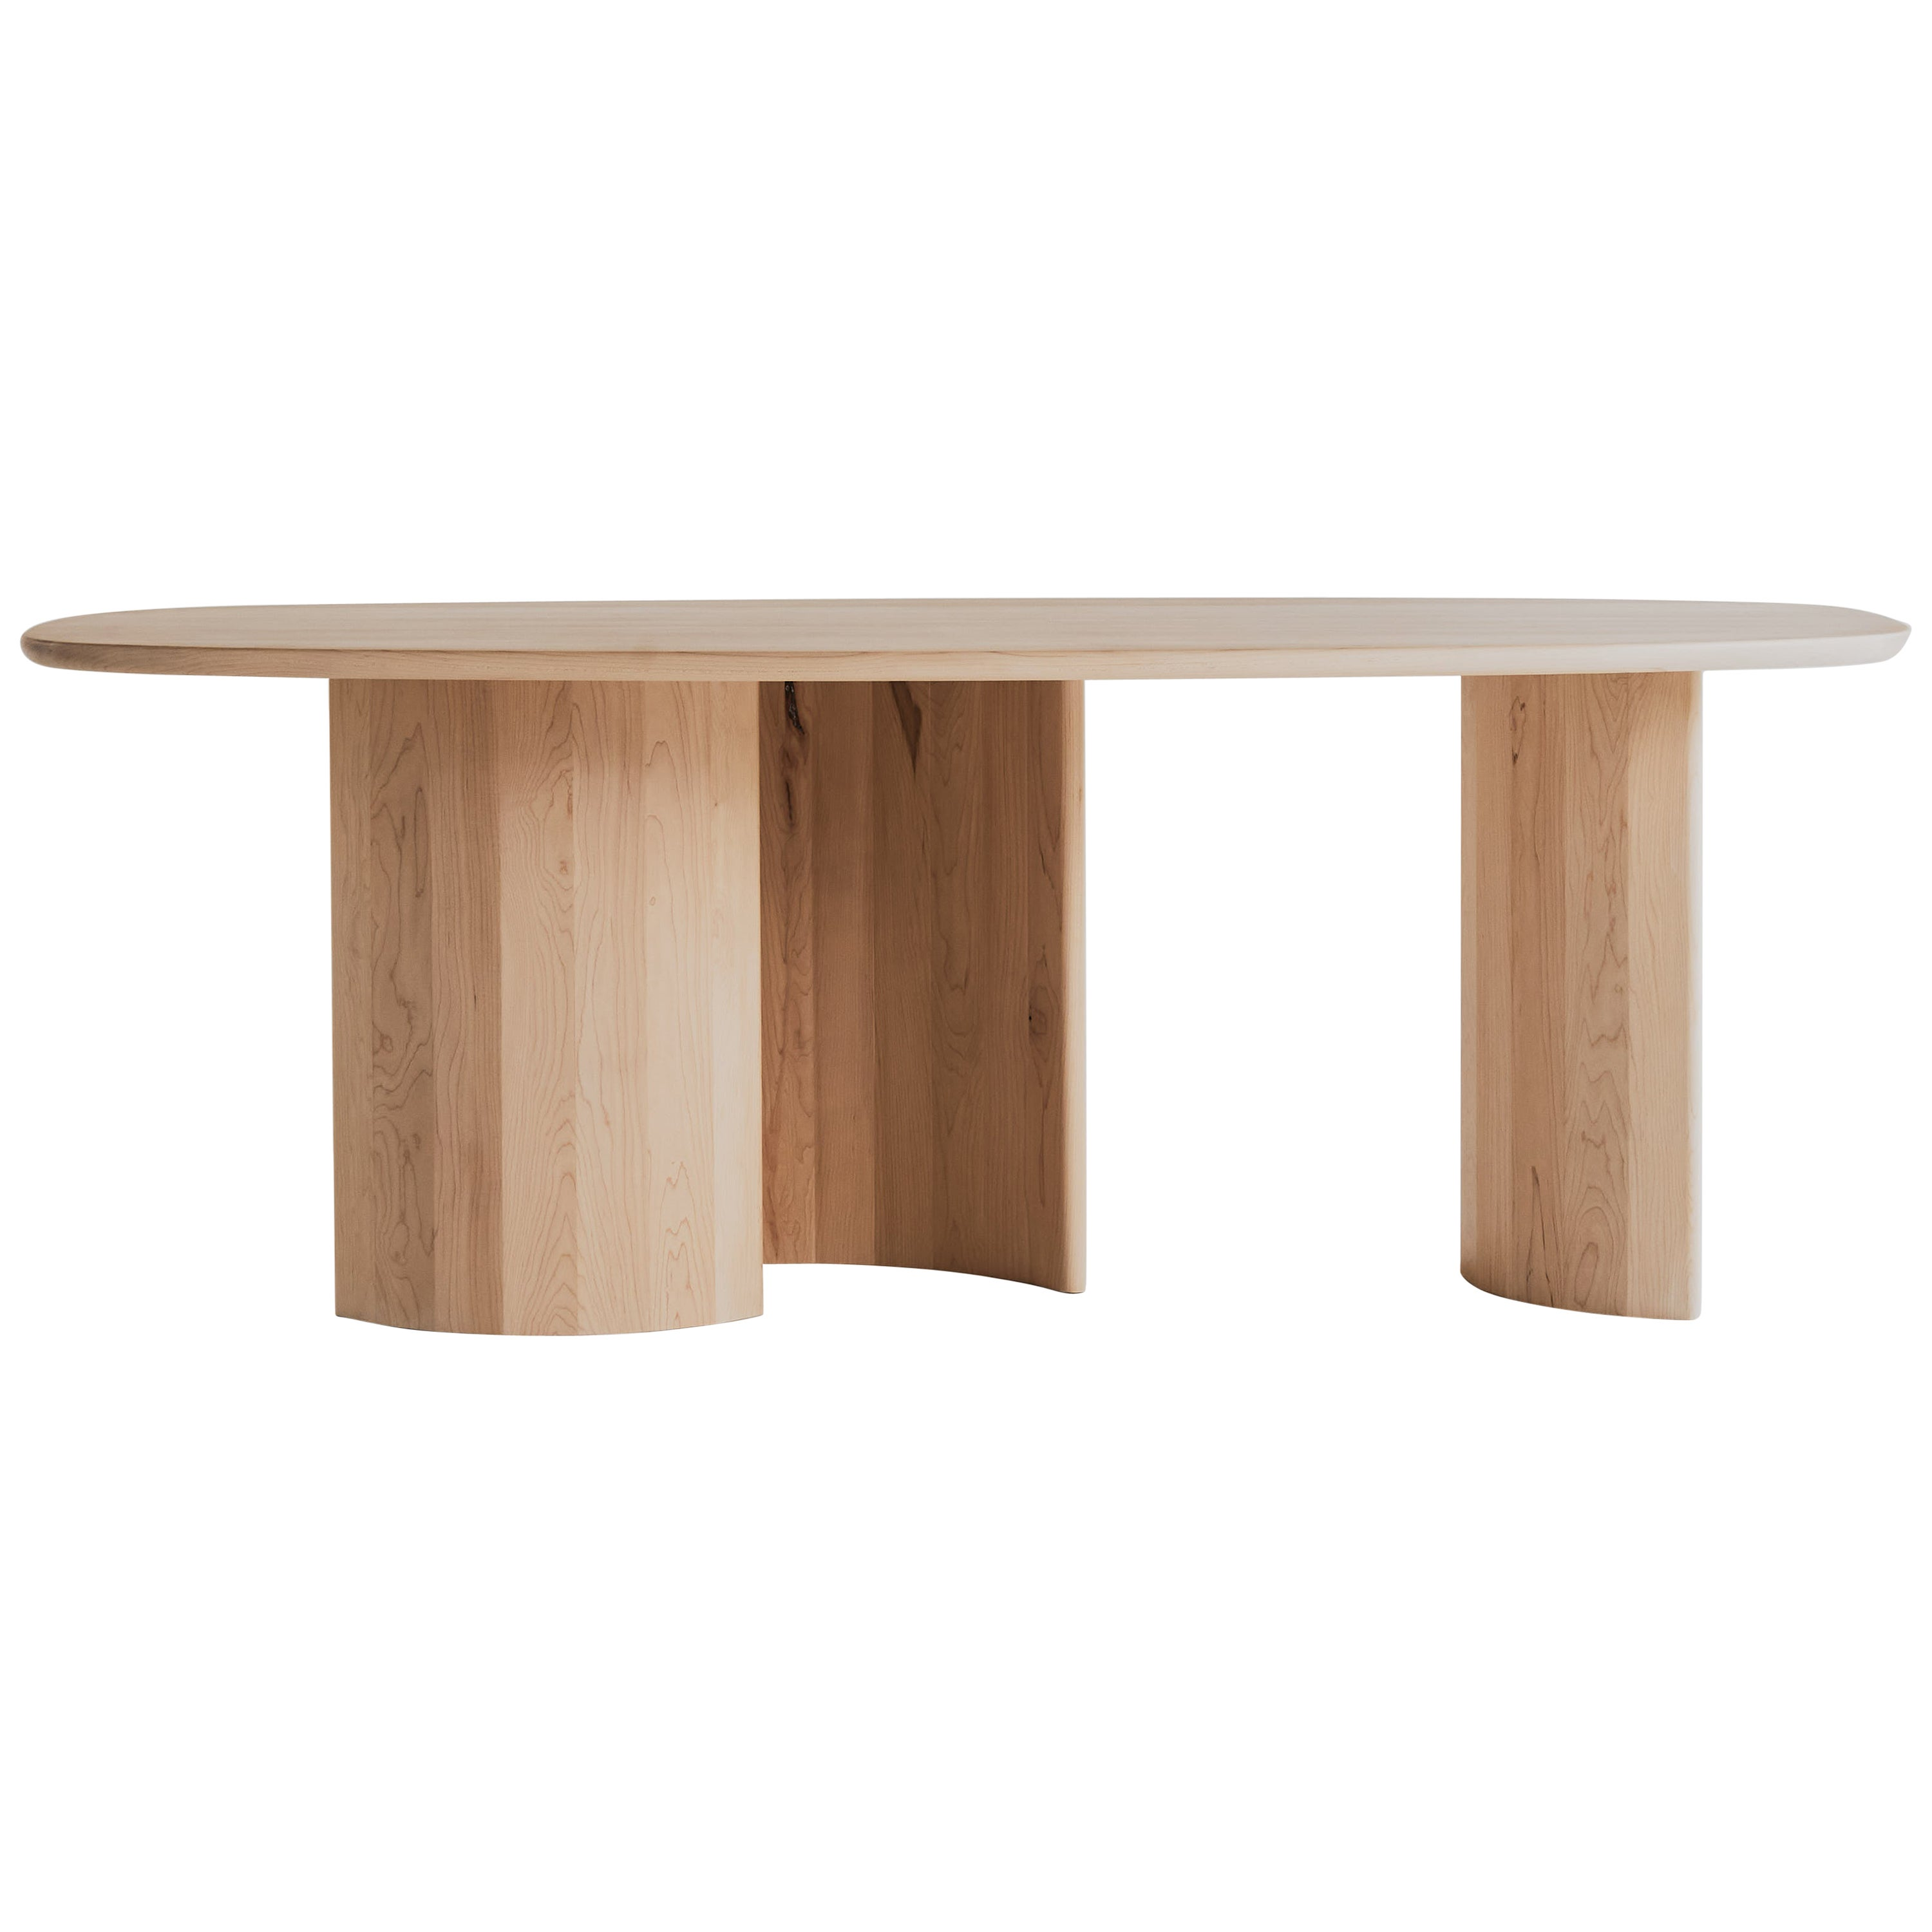 Contemporary Organic Sculptural Maple Wood Dining Table for Richard by Campagna